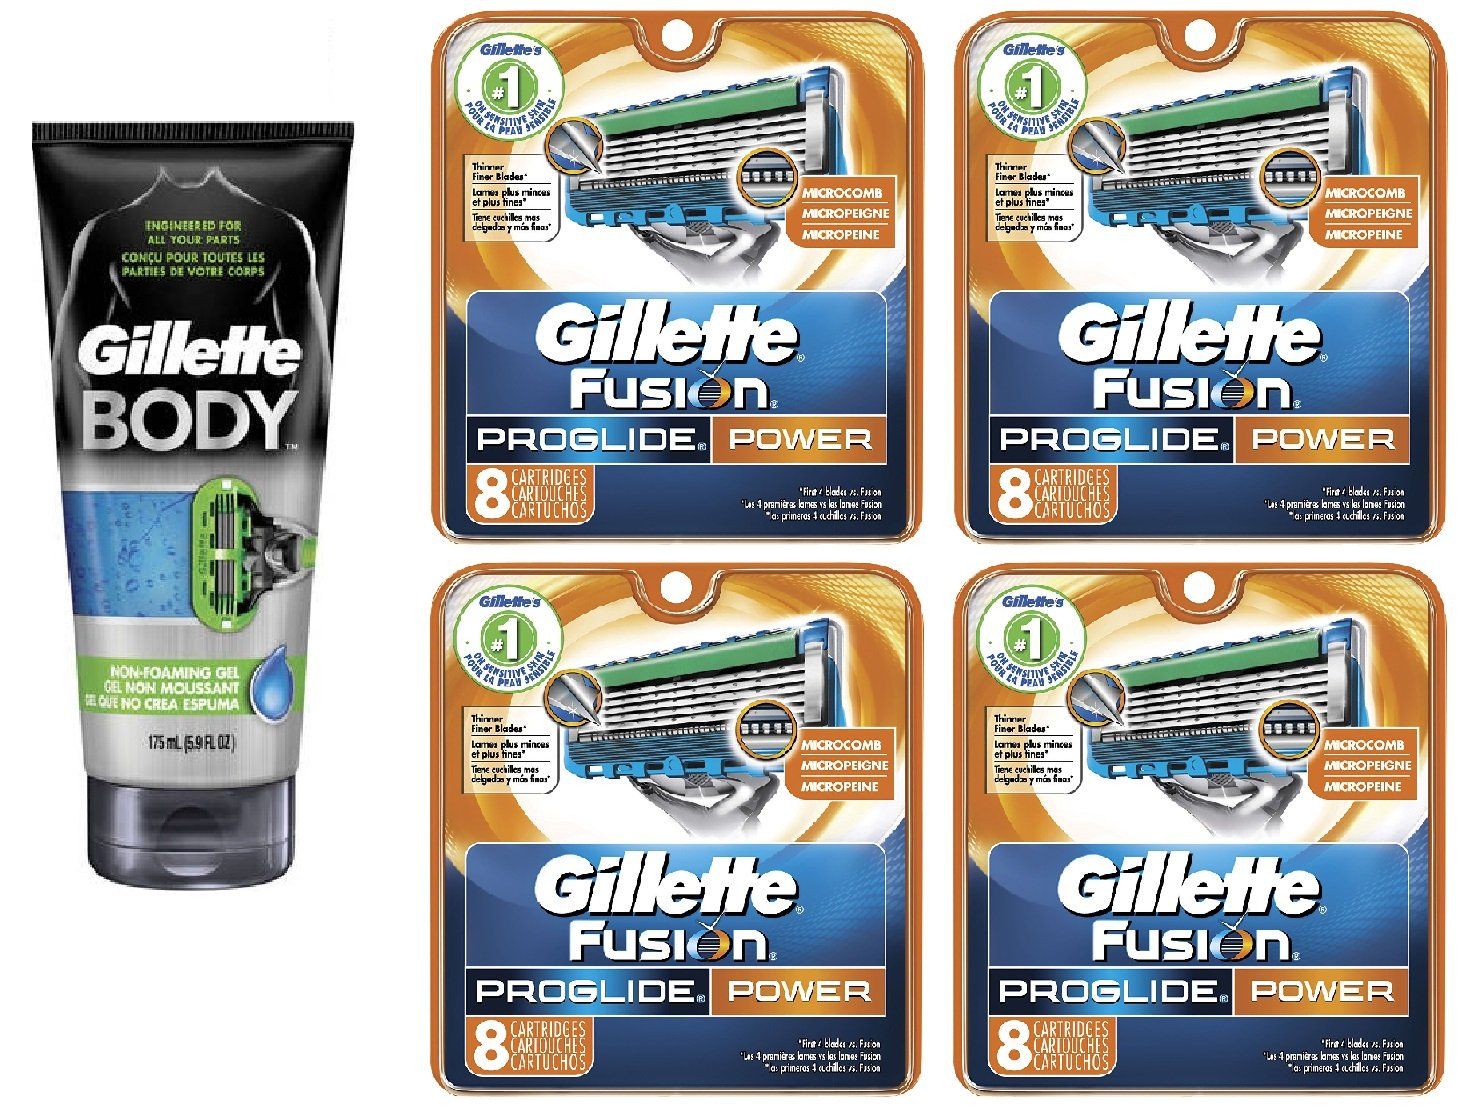 Gillette Body Non Foaming Shave Gel for Men, 5.9 Fl Oz + Fusion Proglide Power Refill Blades 8 Ct (4 Pack) + FREE Assorted Purse Kit/Cosmetic Bag Bonus Gift